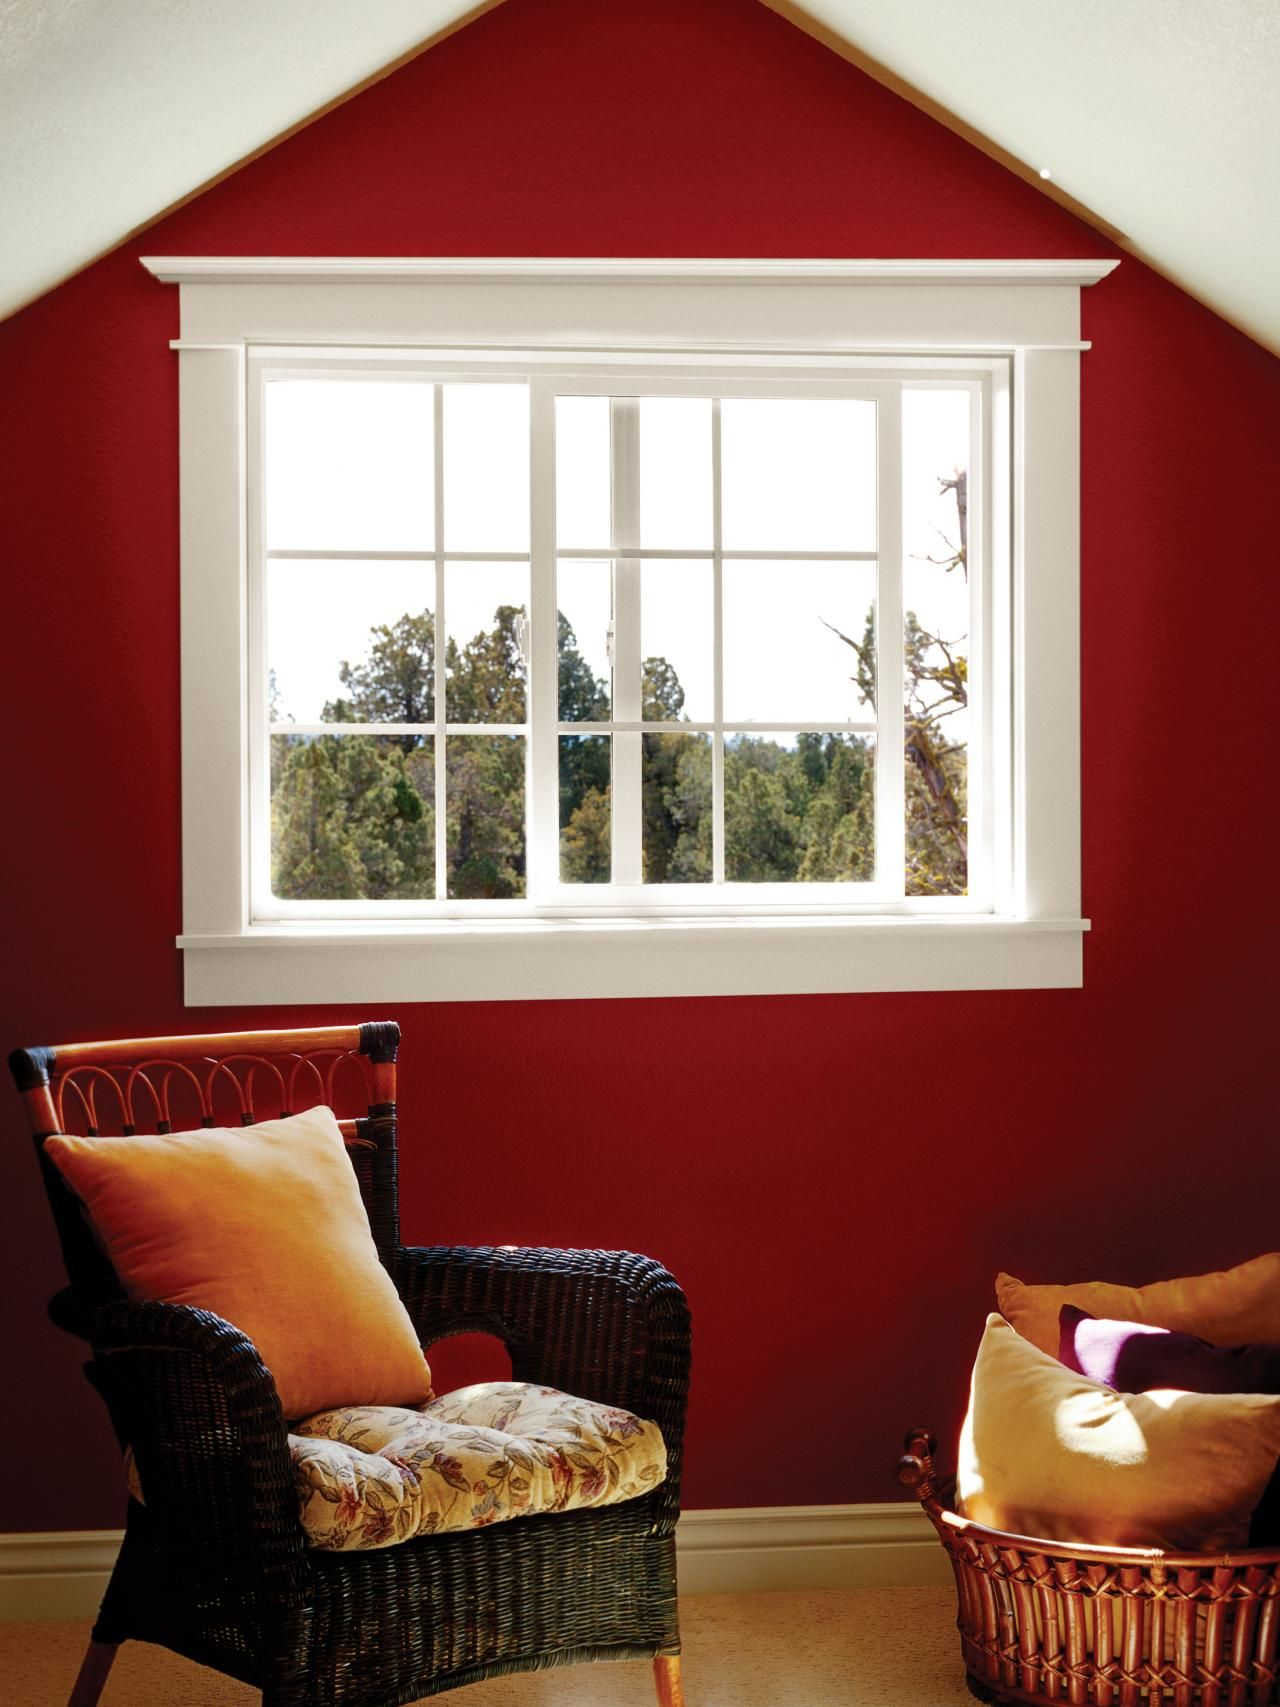 8 types of windows hgtv glass design and window frames you can change the windows and doorways with added molding for under 20 if you do it yourself takes a little time but easier than you think and makes a solutioingenieria Choice Image